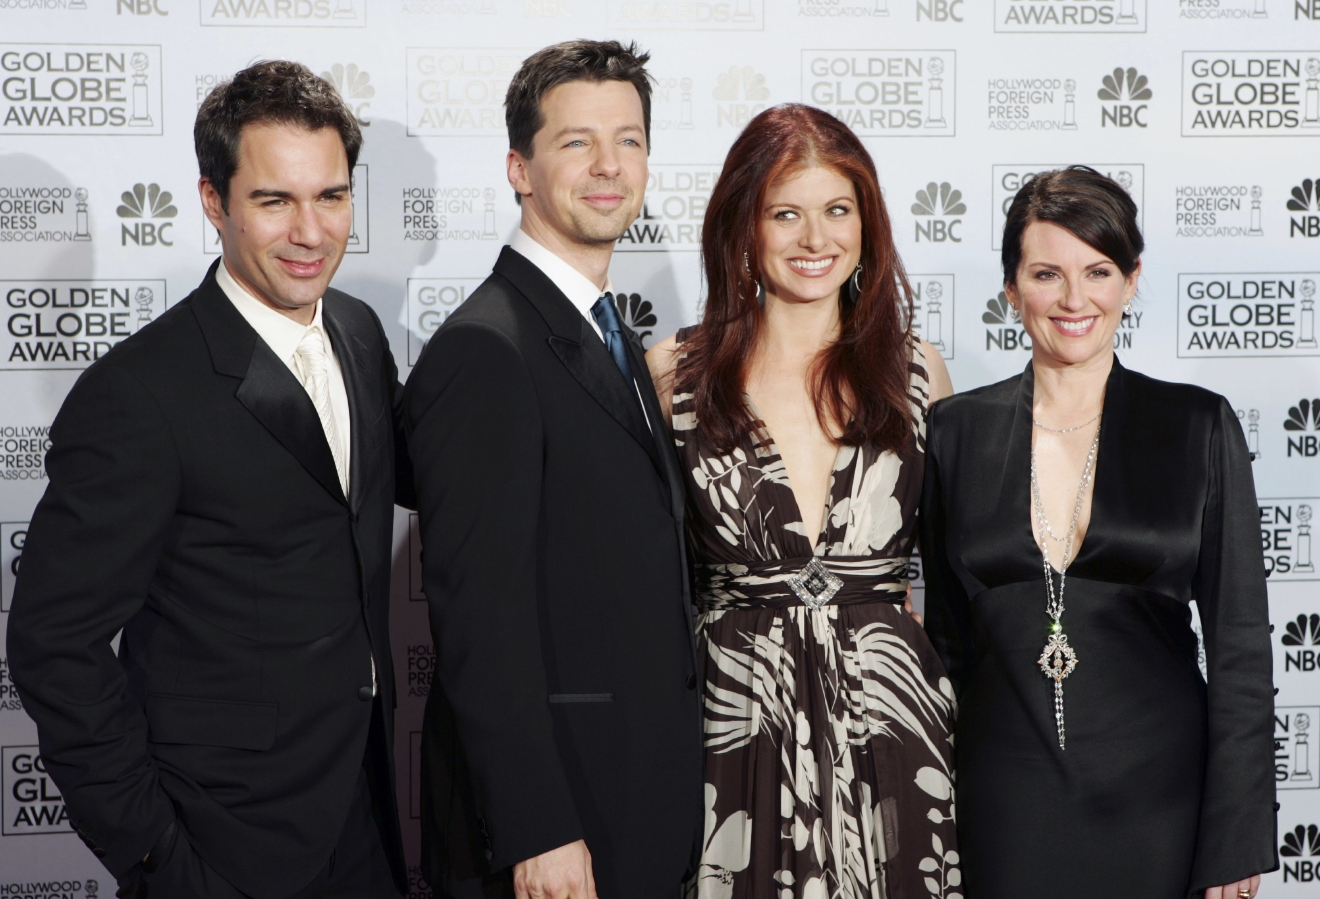 "FILE - In this Jan. 16, 2006, file photo, cast members from the comedy series ""Will & Grace,"" from left, Eric McCormack, Sean Hayes, Debra Messing and Megan Mullally, pose backstage after making an award presentation at the 63rd Annual Golden Globe Awards in Beverly Hills, Calif. The stars of ""Will & Grace"" gave fans a behind the scenes glimpse at production of the series' revival on the weekend of March 5, 2017. (AP Photo/Reed Saxon, File)"